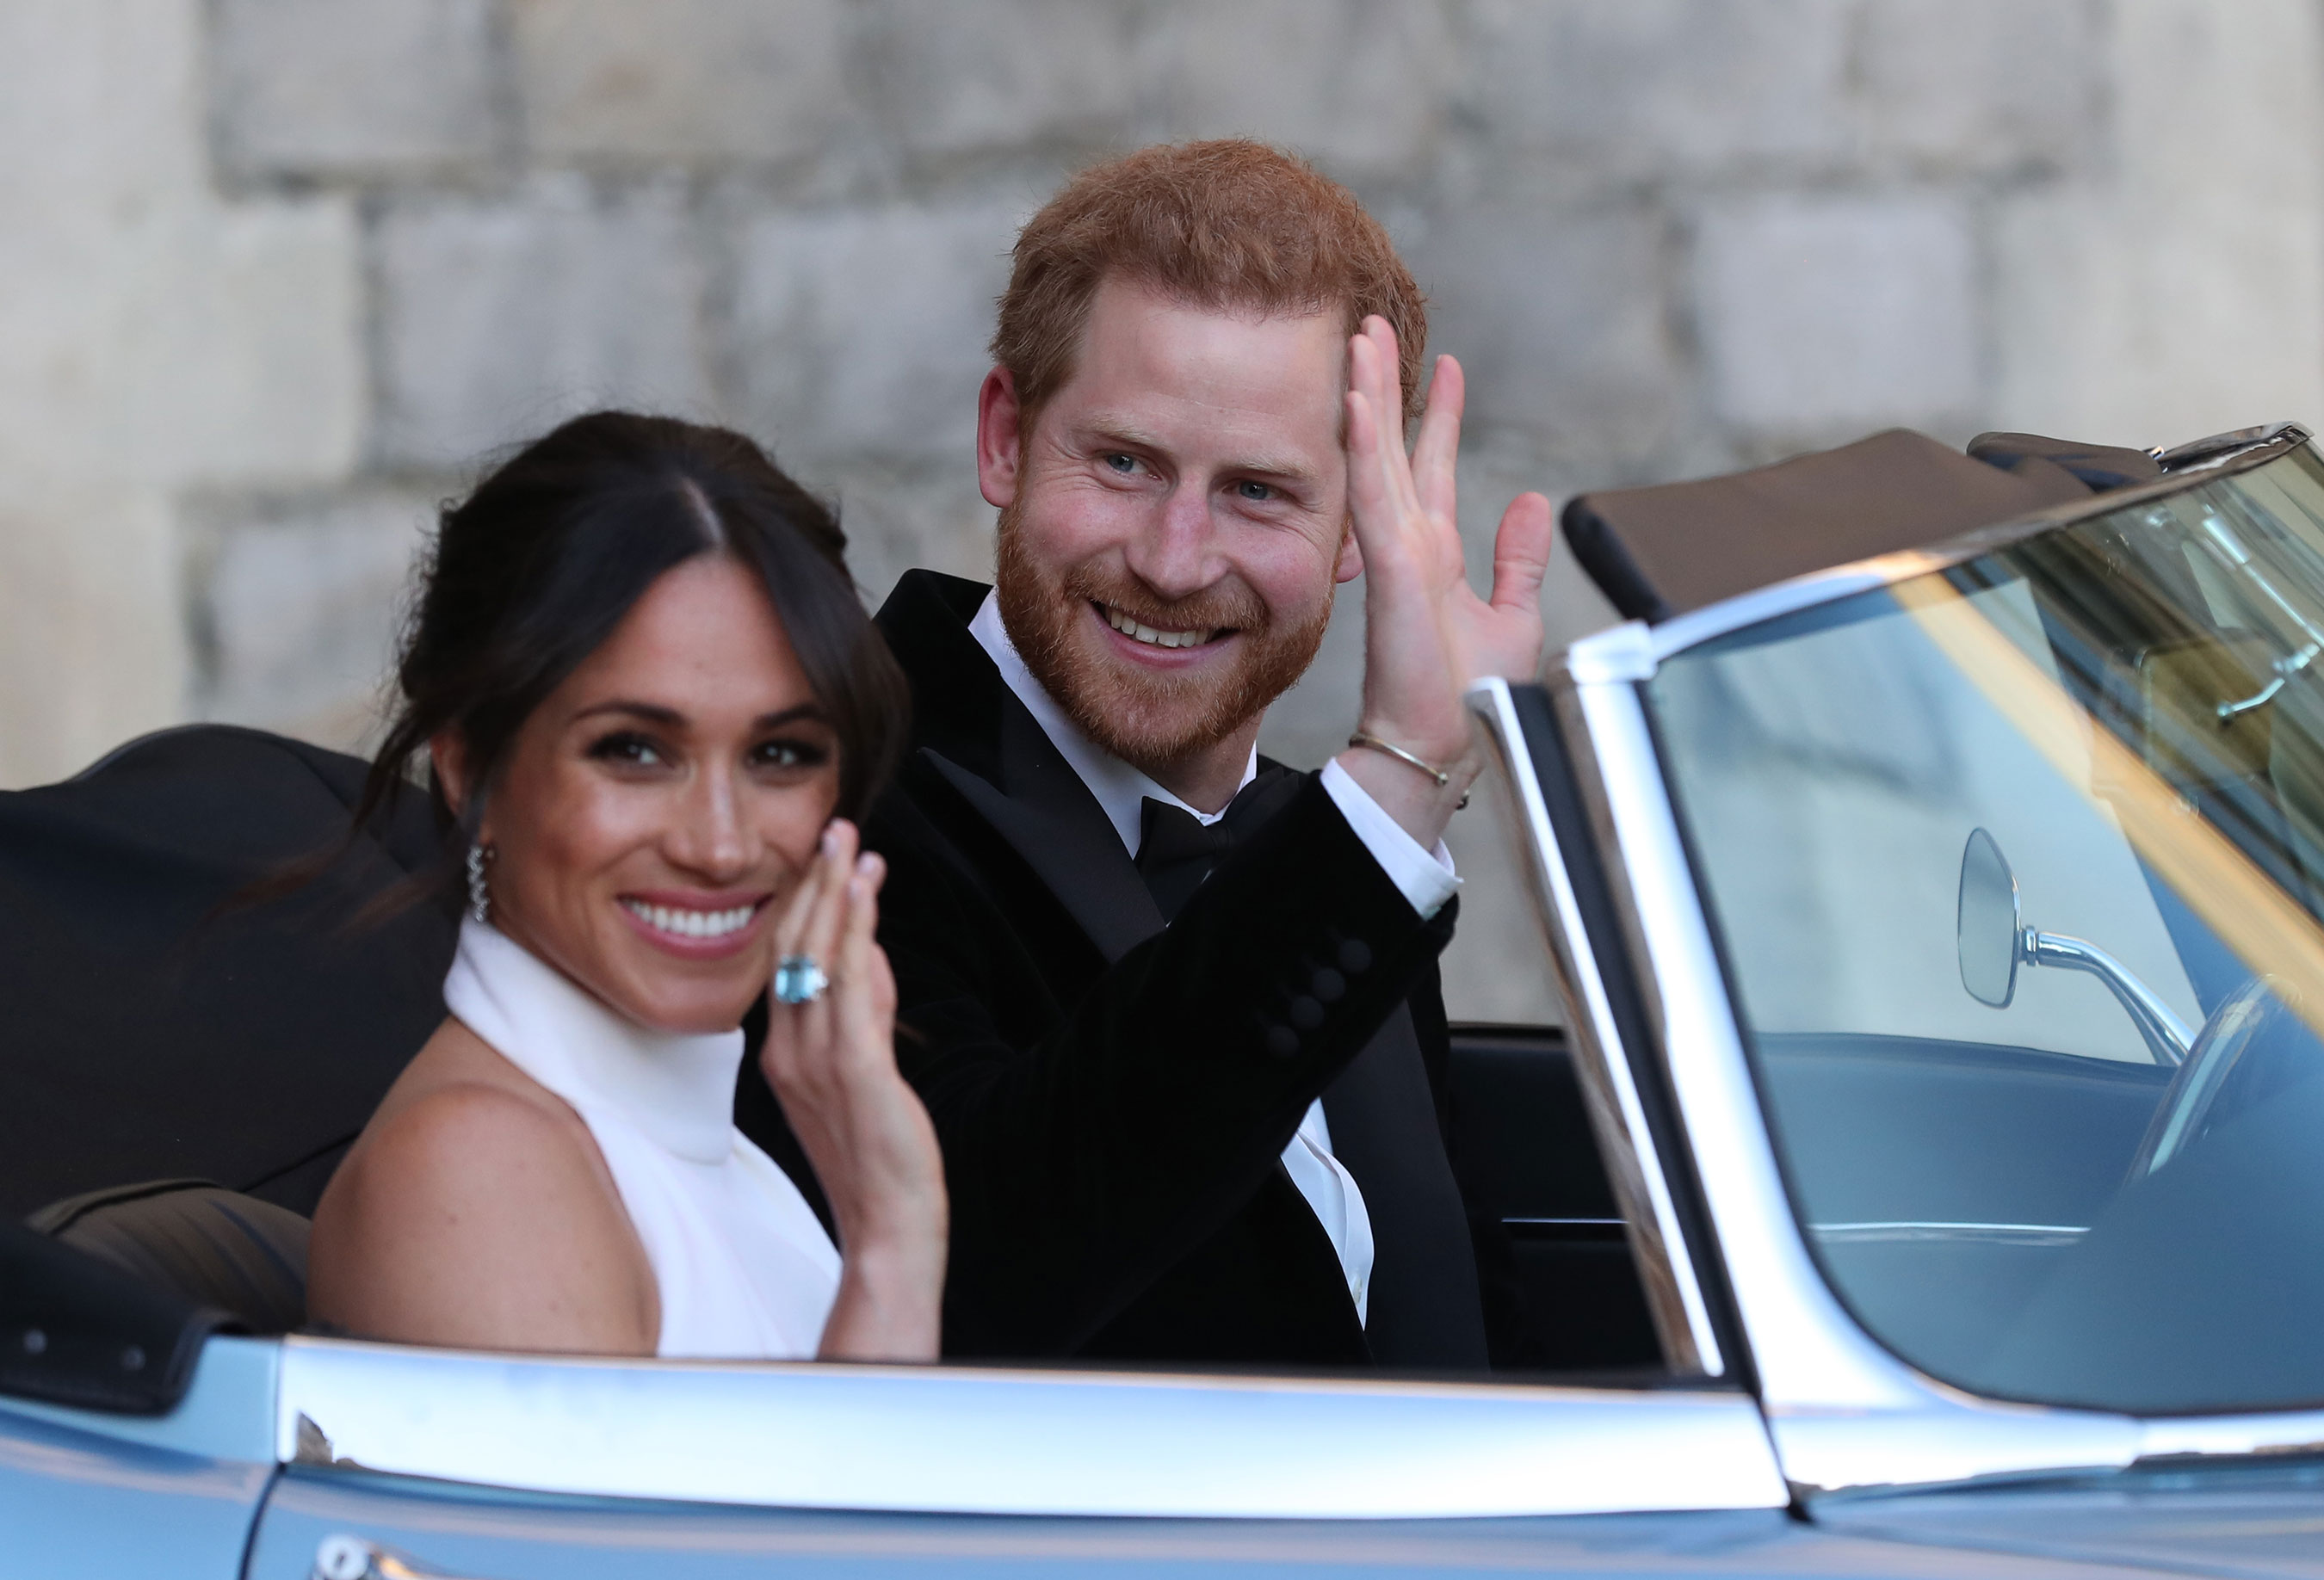 MeghanMarklePrinceHarryWave Day in the Life: Meghan Markle